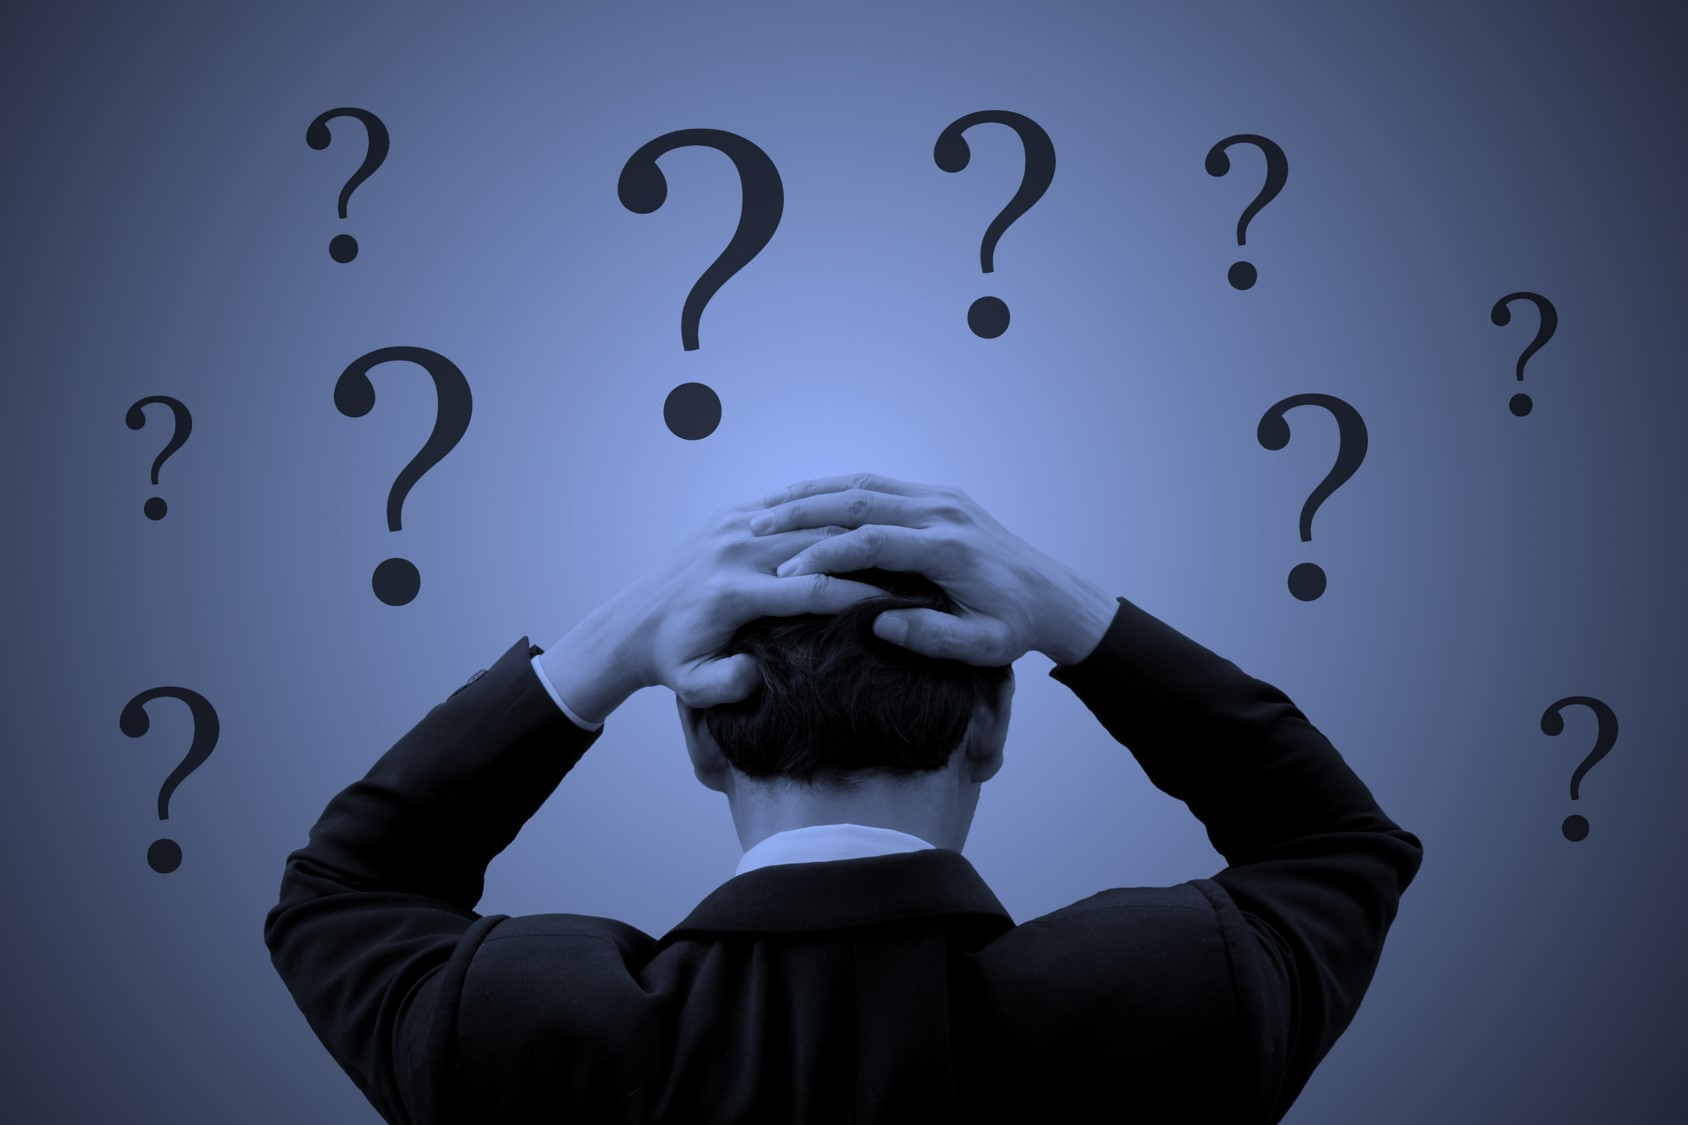 3 Reasons Why Enterprises Hate Security Questionnaires